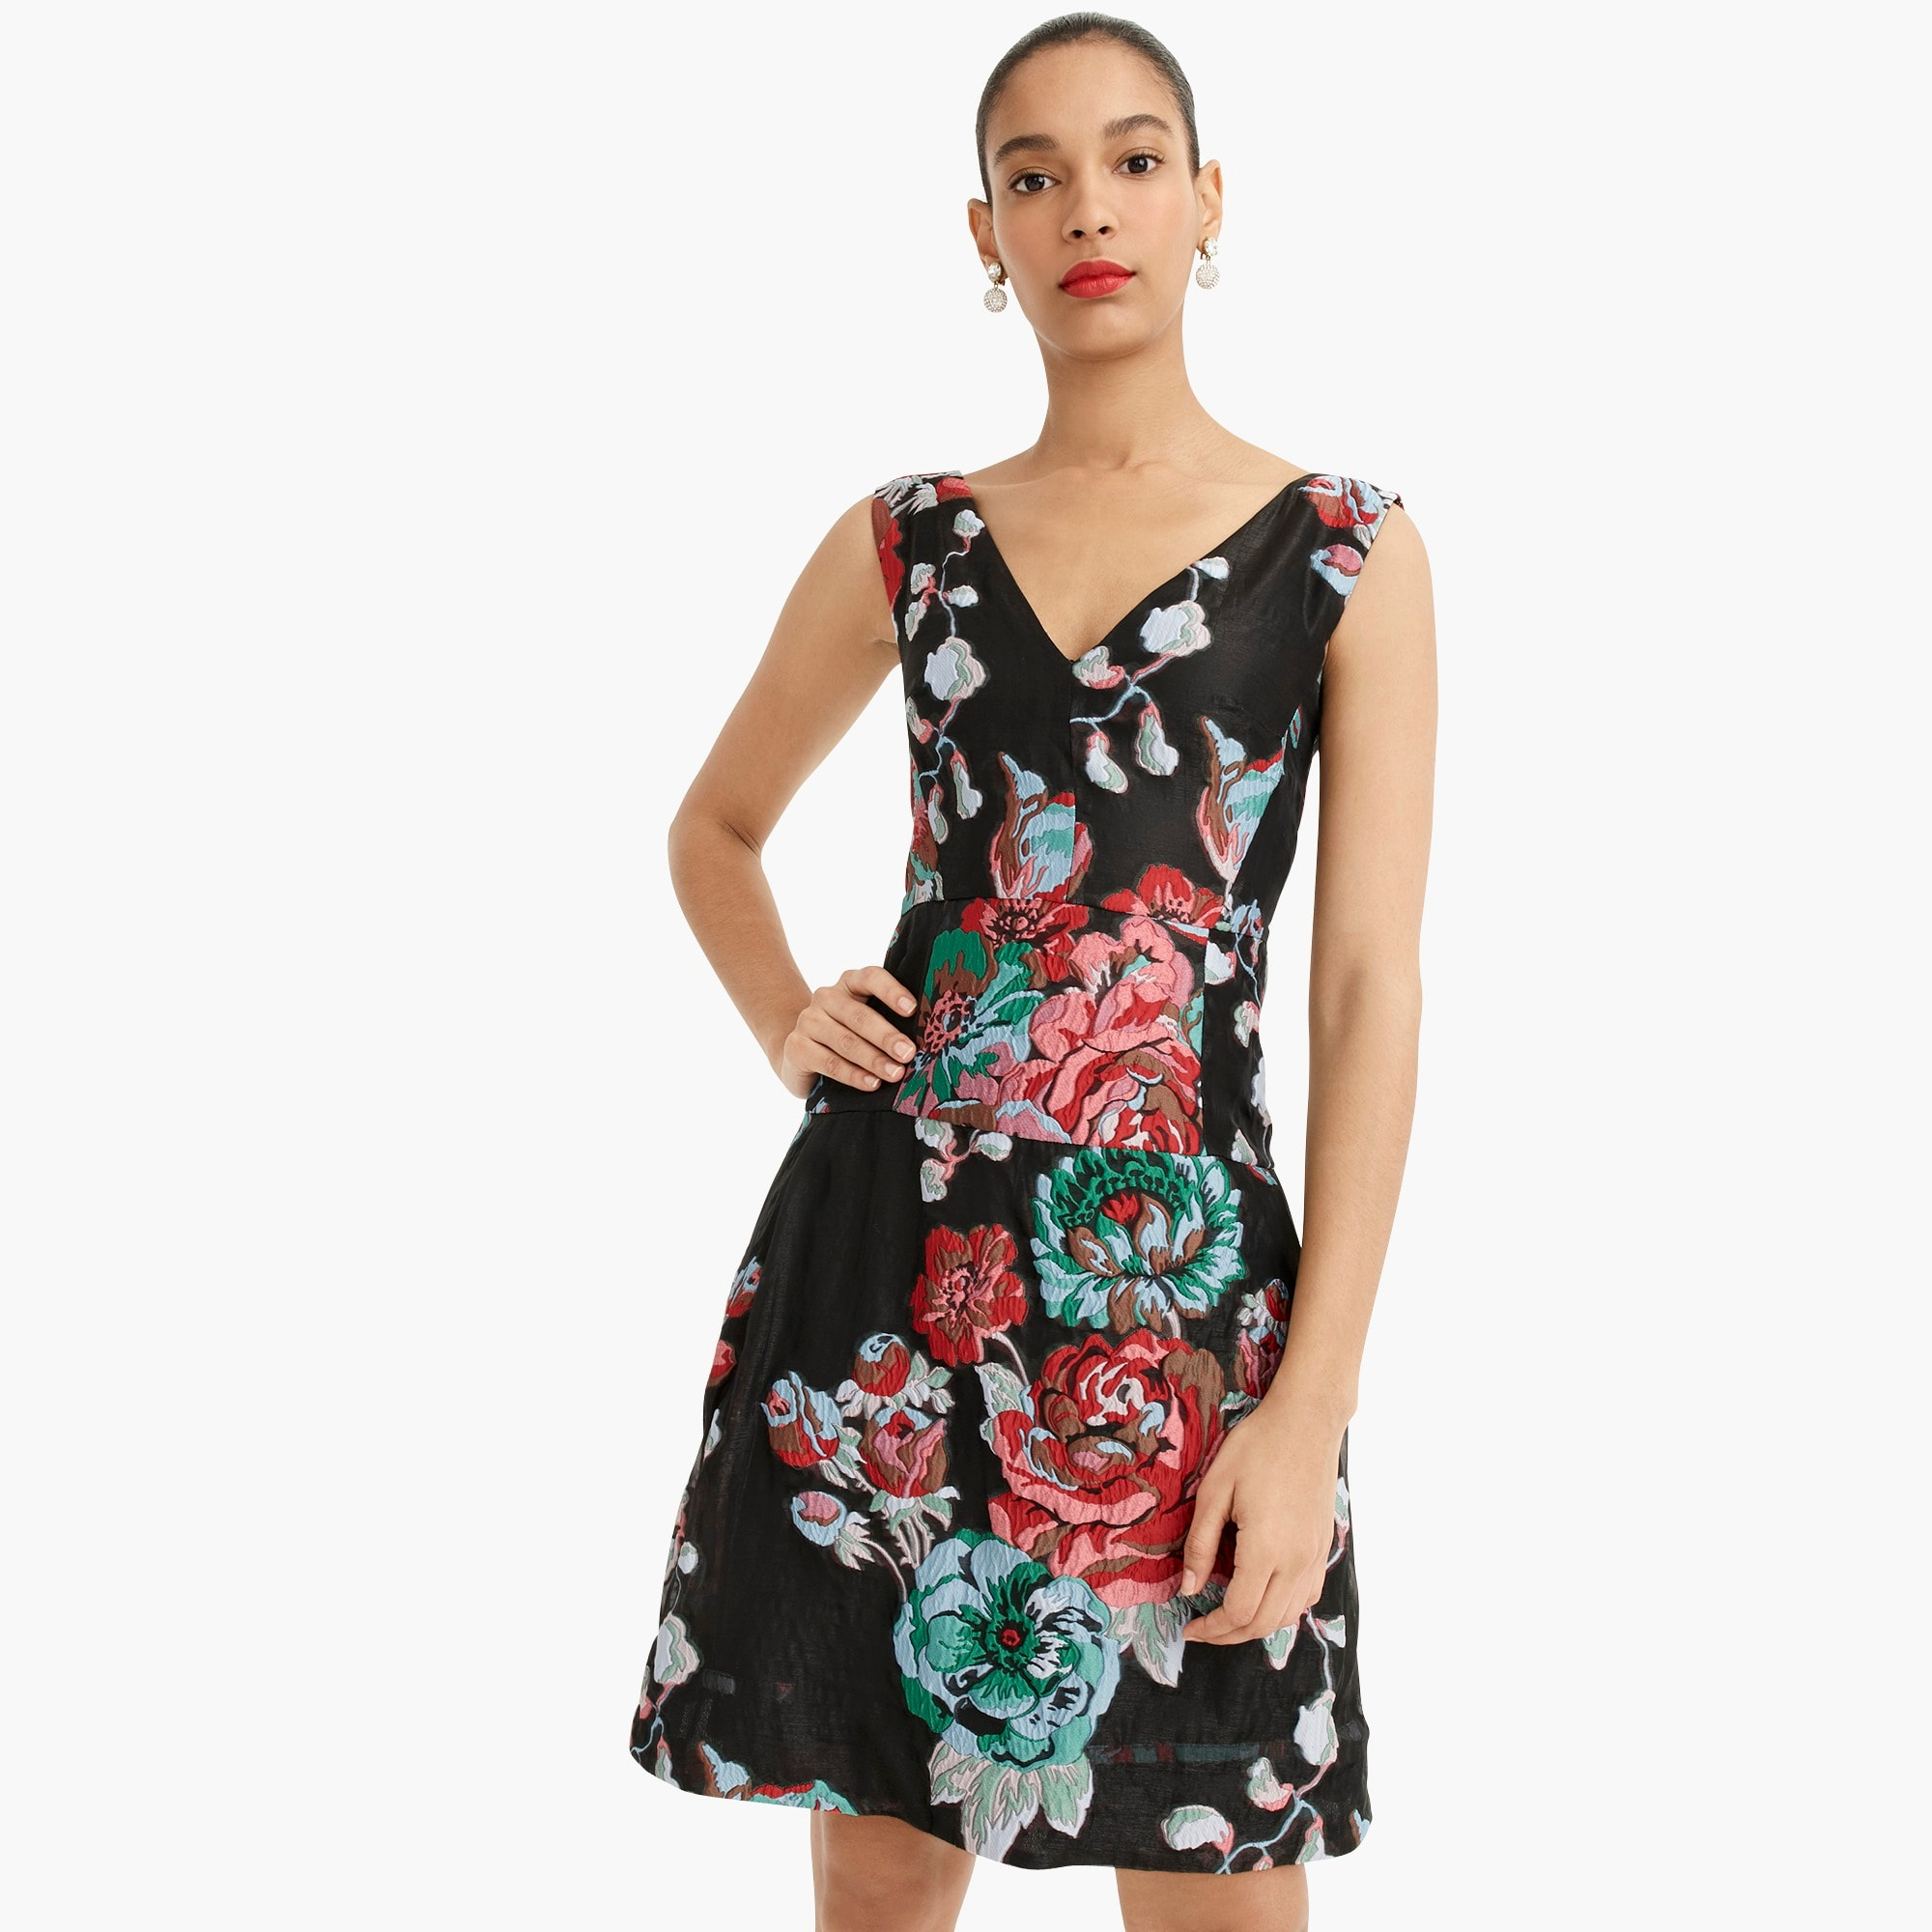 womens Collection A-line dress in Ratti® garden floral jacquard